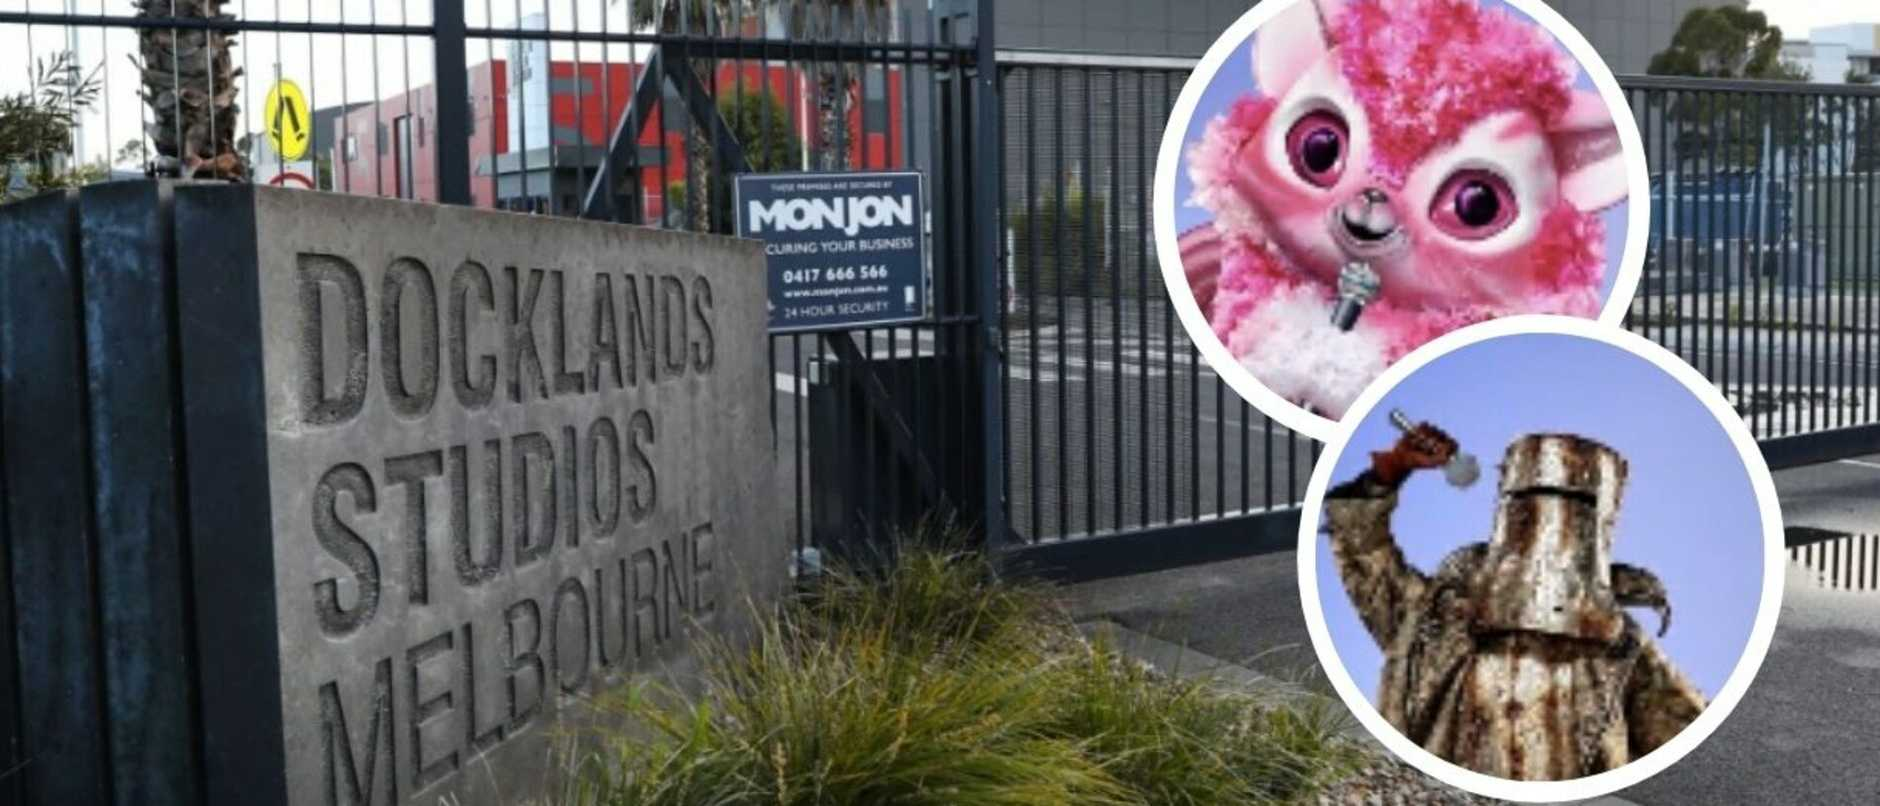 The number of cases linked to an outbreak at Docklands Studios, where the Masked Singer and Hot Seat were being filmed has grown overnight